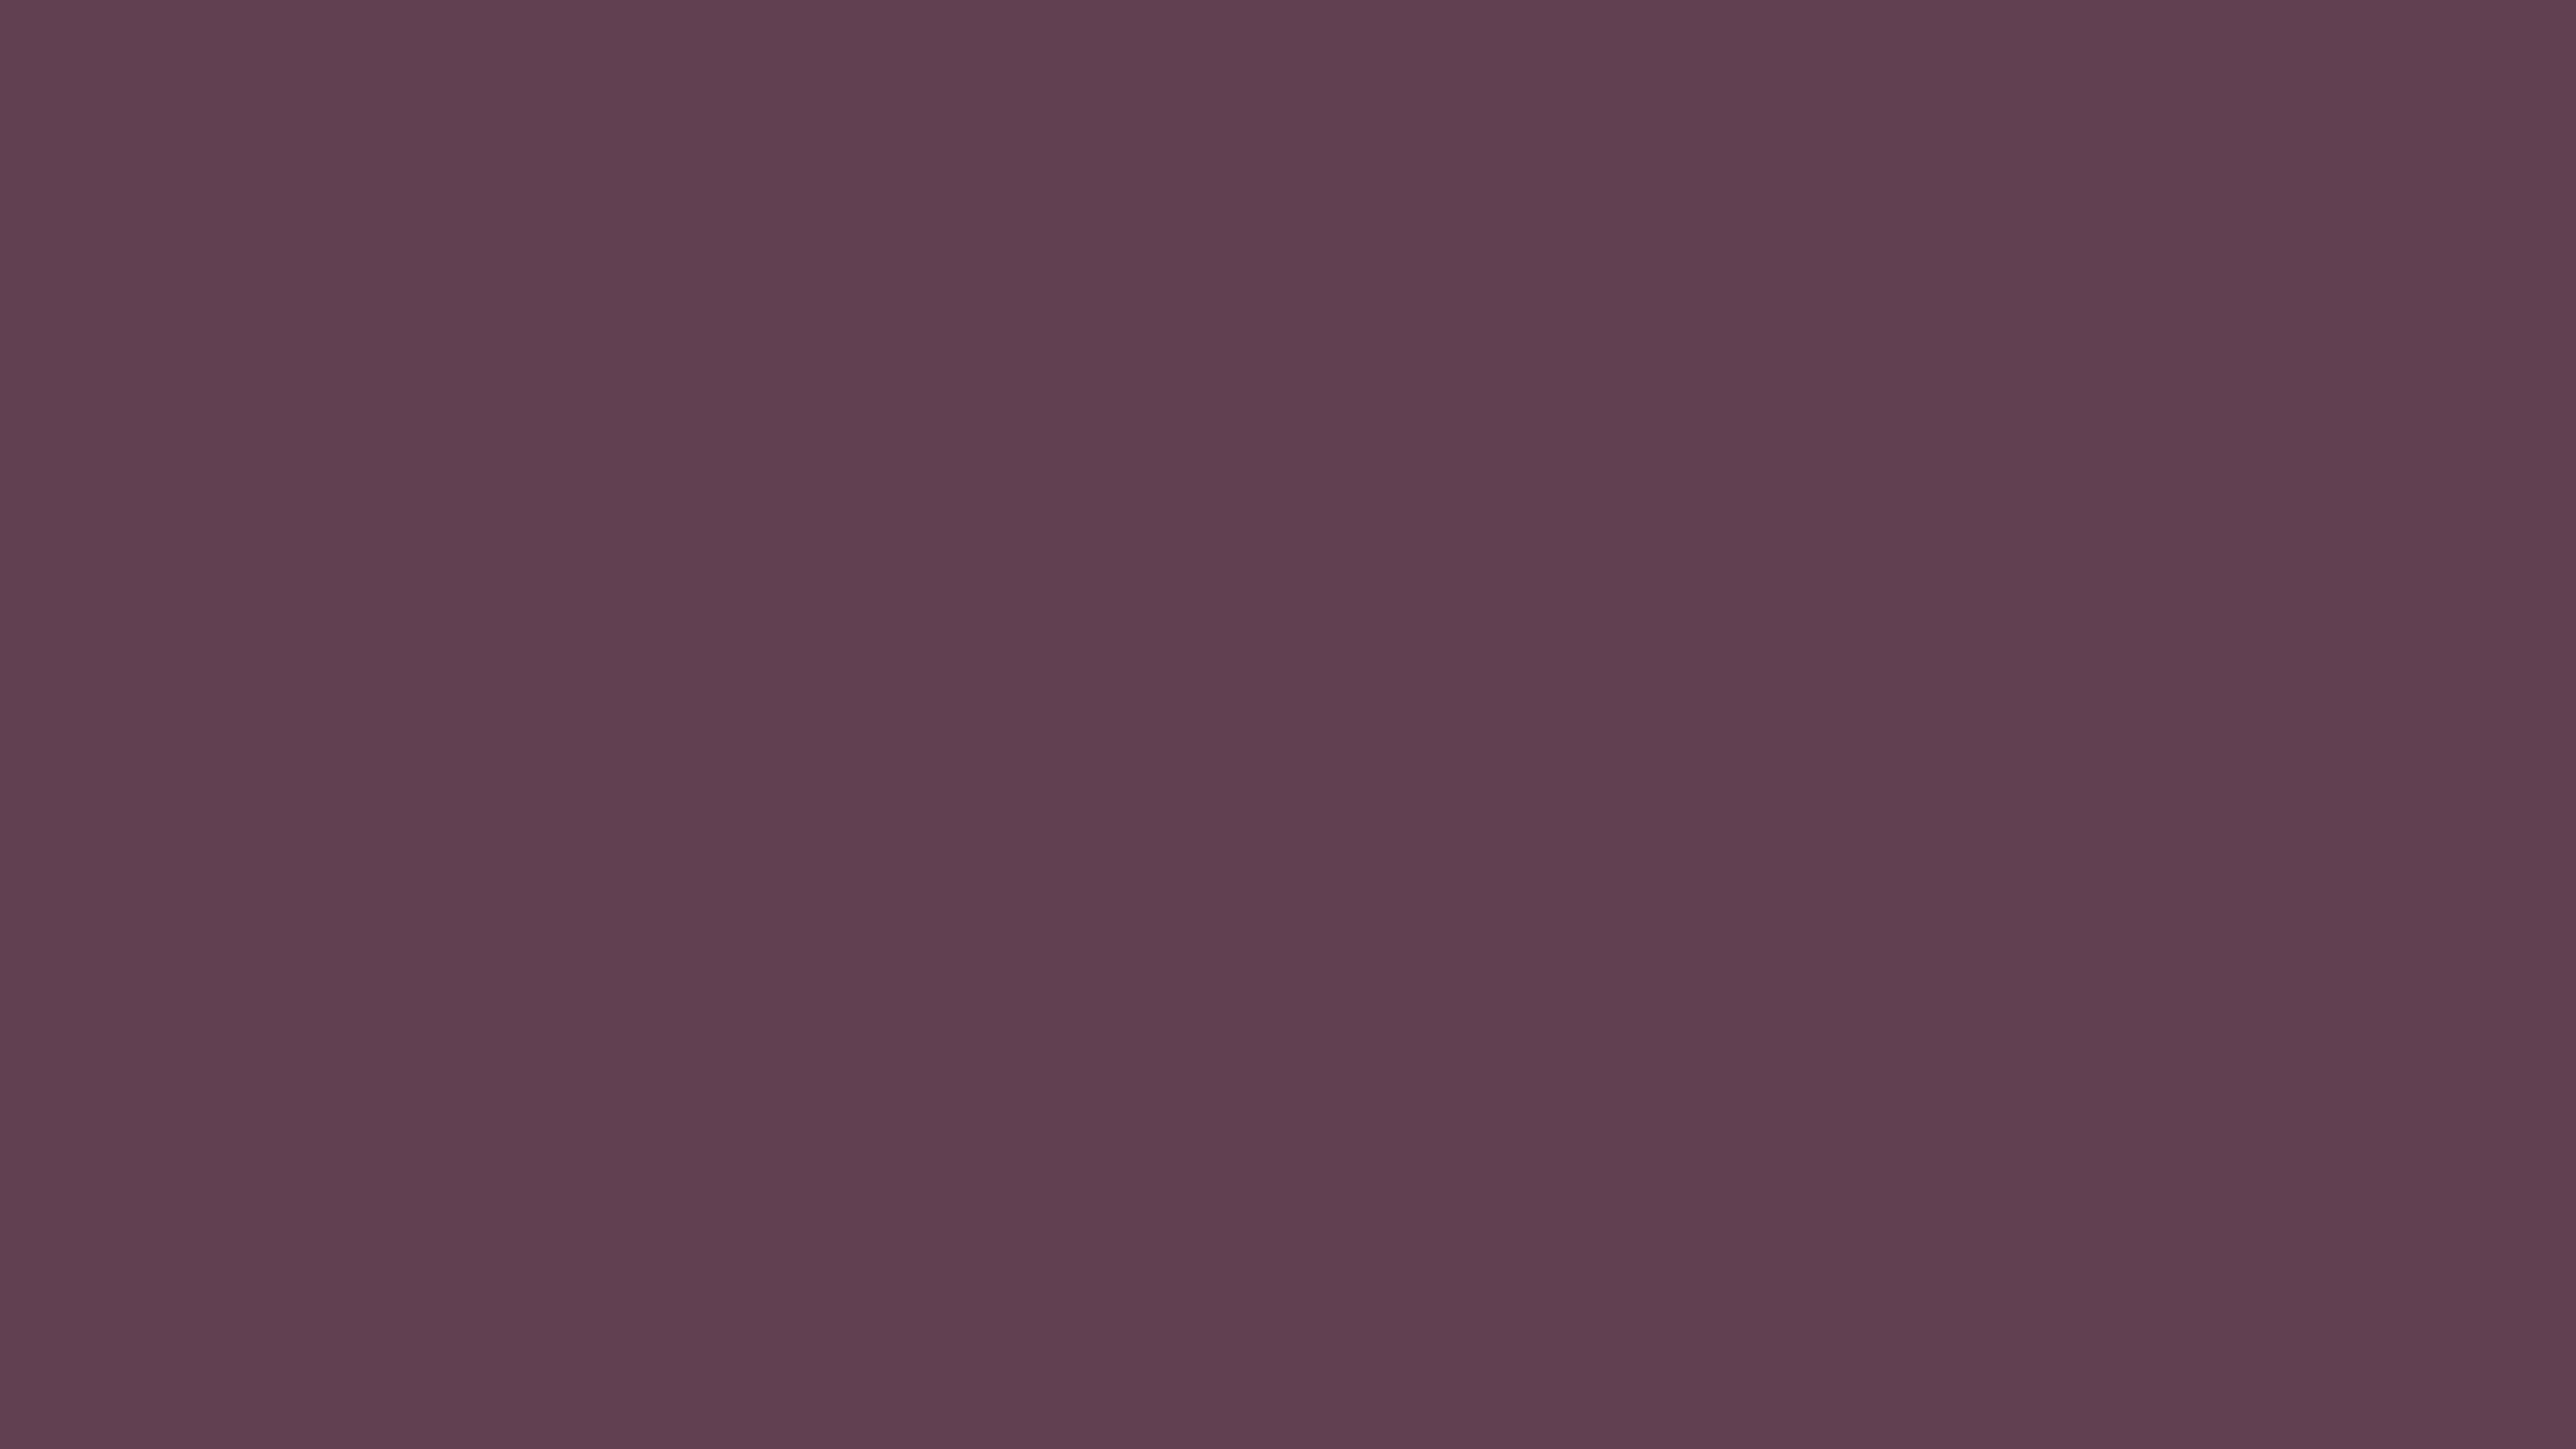 3840x2160 Eggplant Solid Color Background